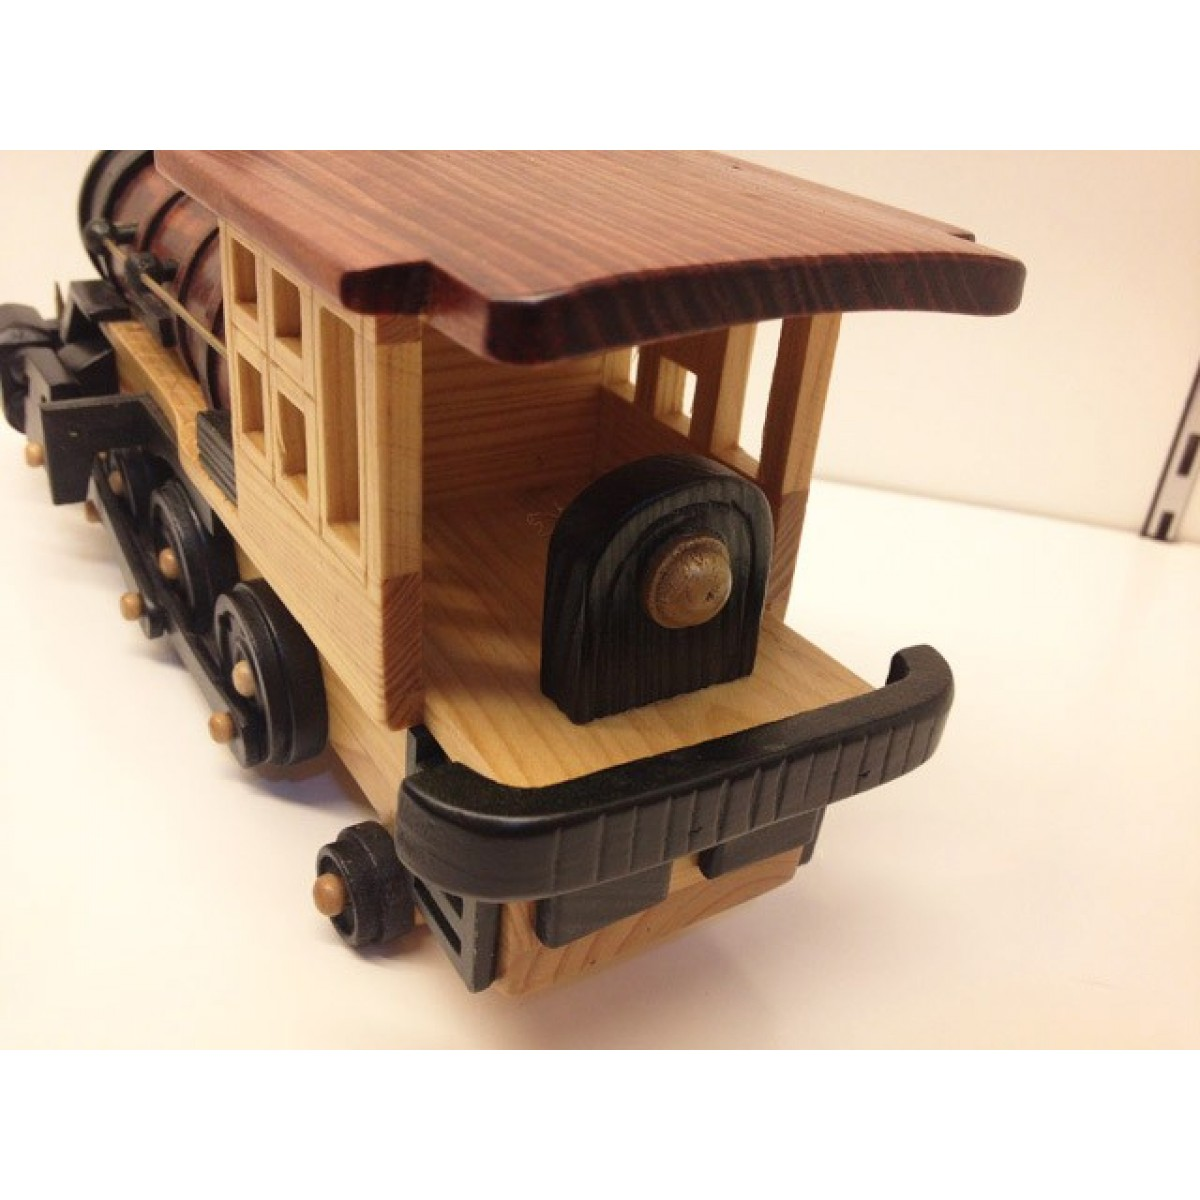 how to make steam engine train at home